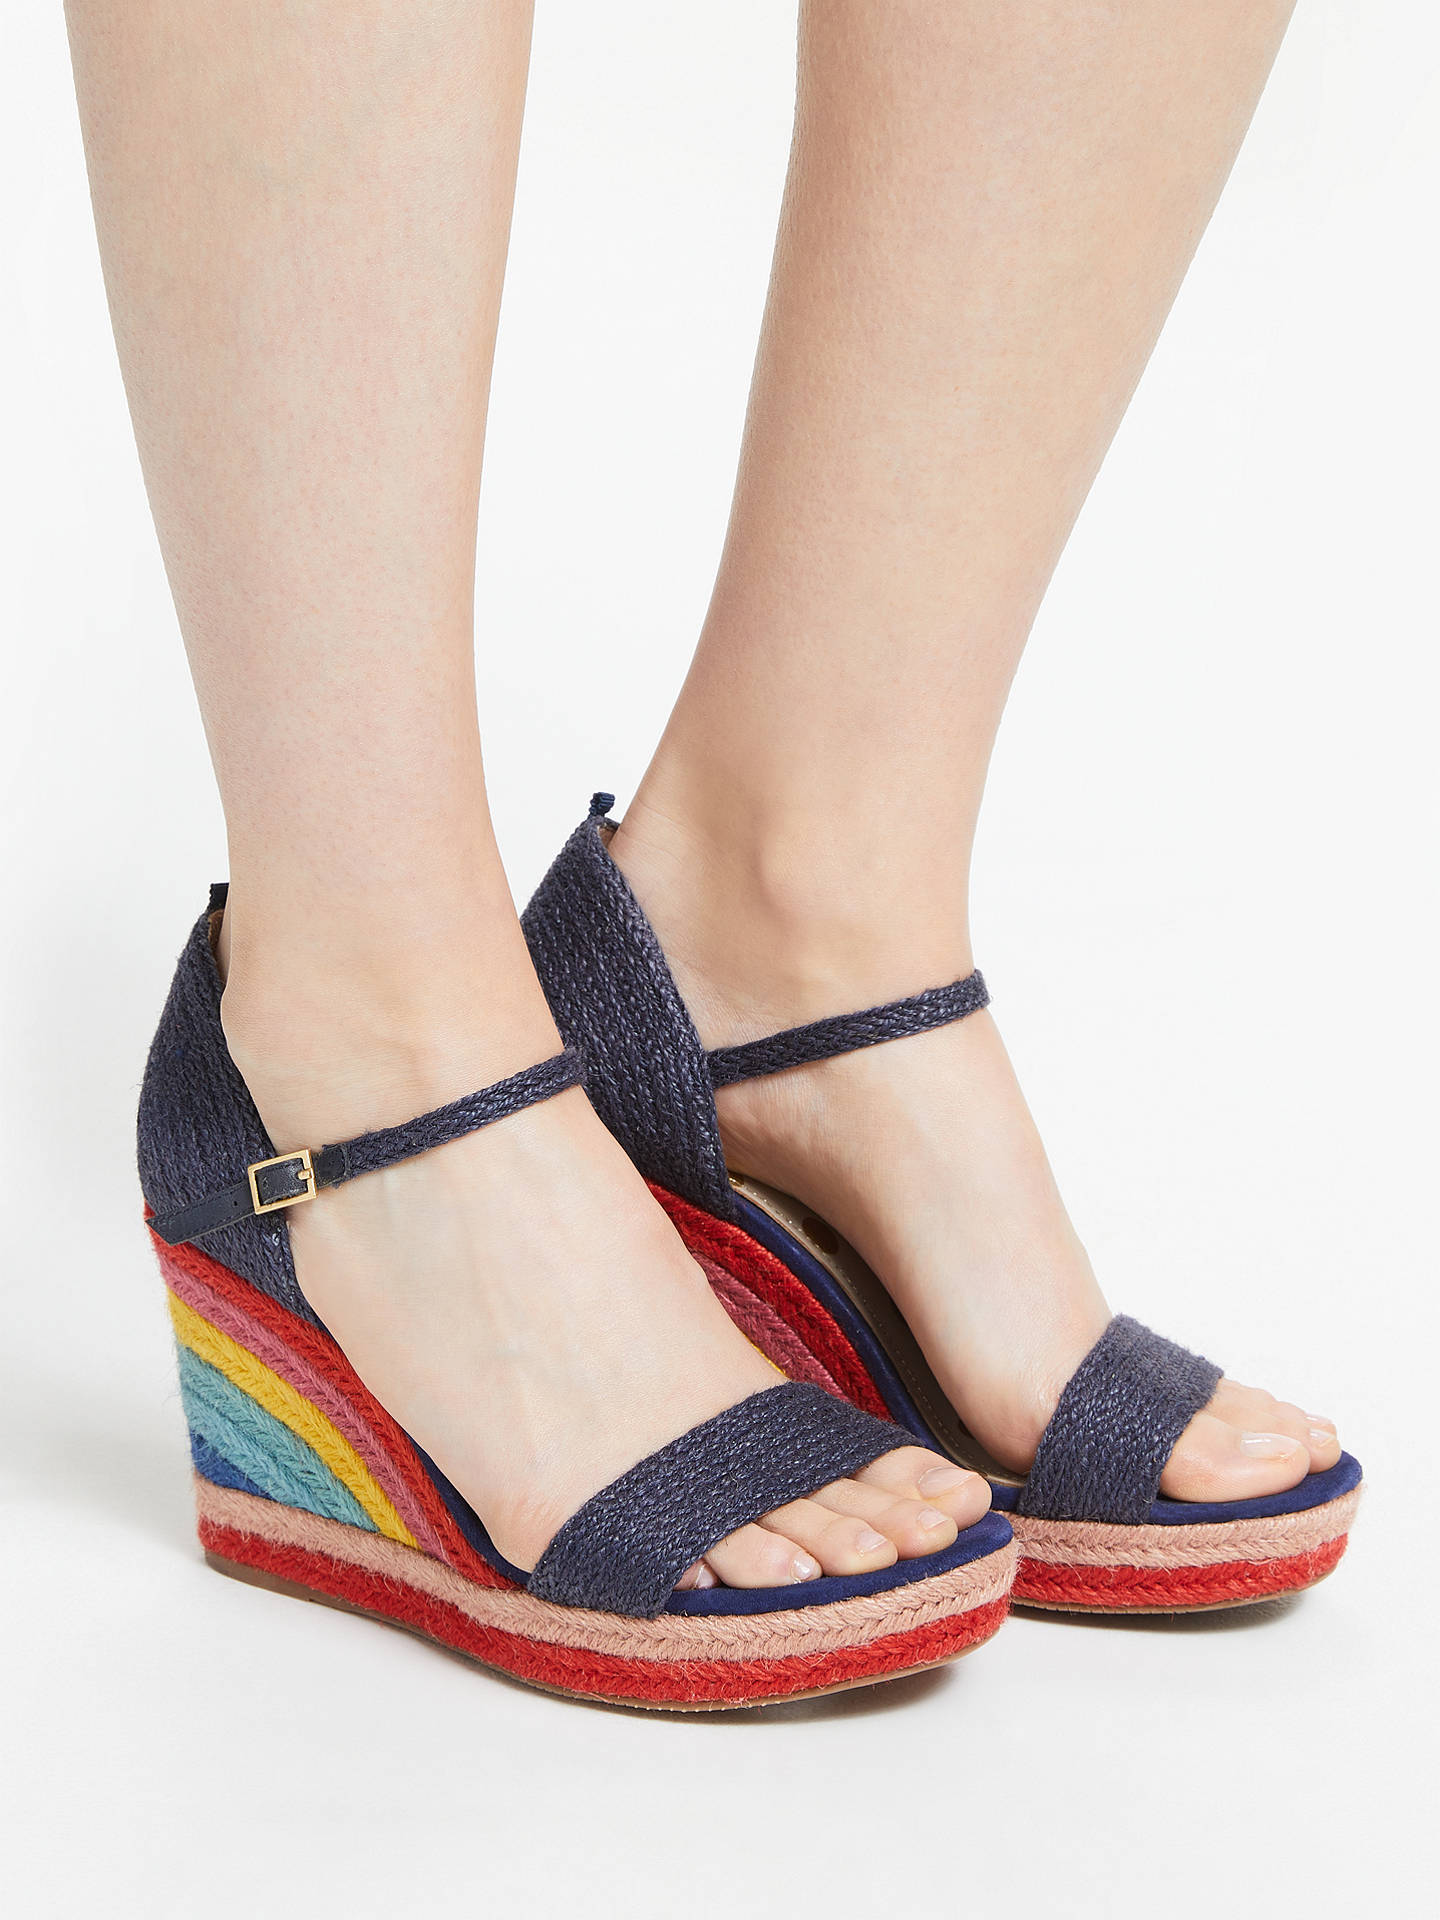 7db2656389e Boden Lily Espadrille Wedges, Navy, Navy